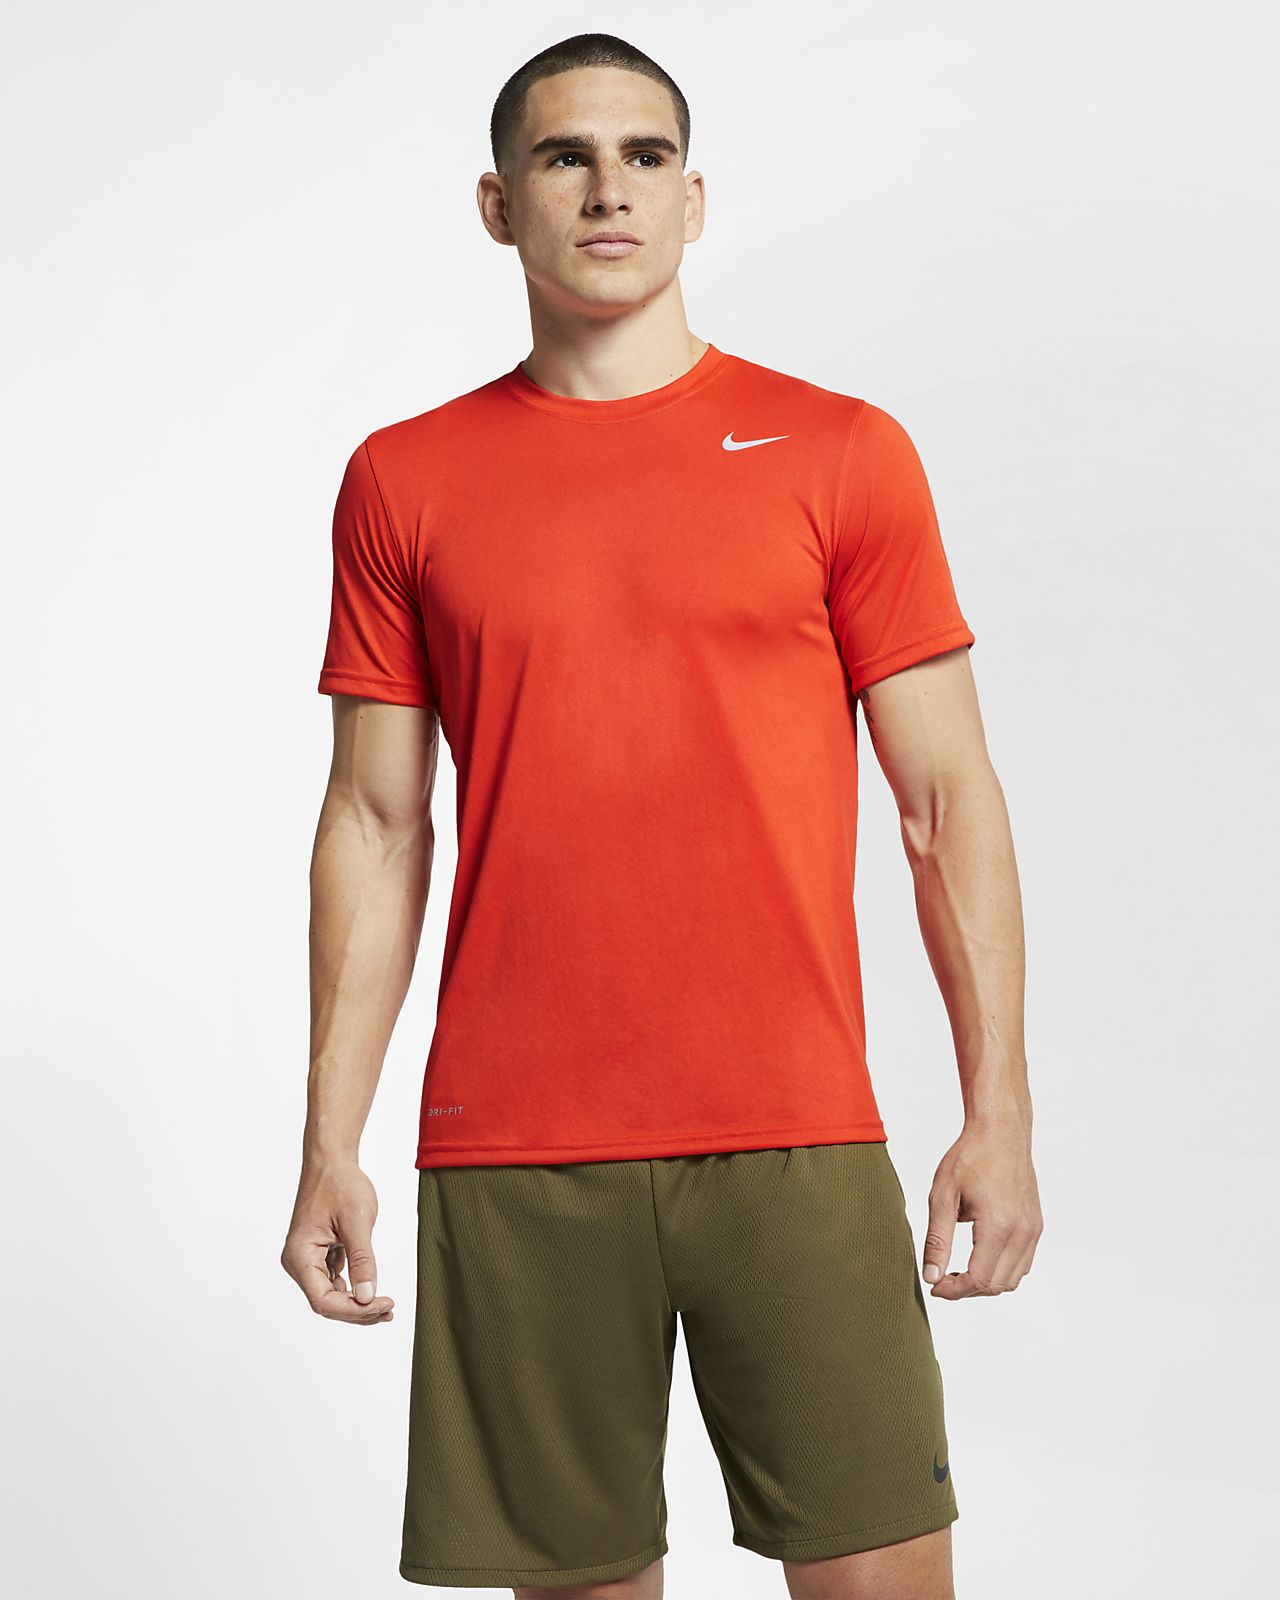 0b72c0eceac Nike Legend 2.0 Men s Training T-Shirt. Nike.com